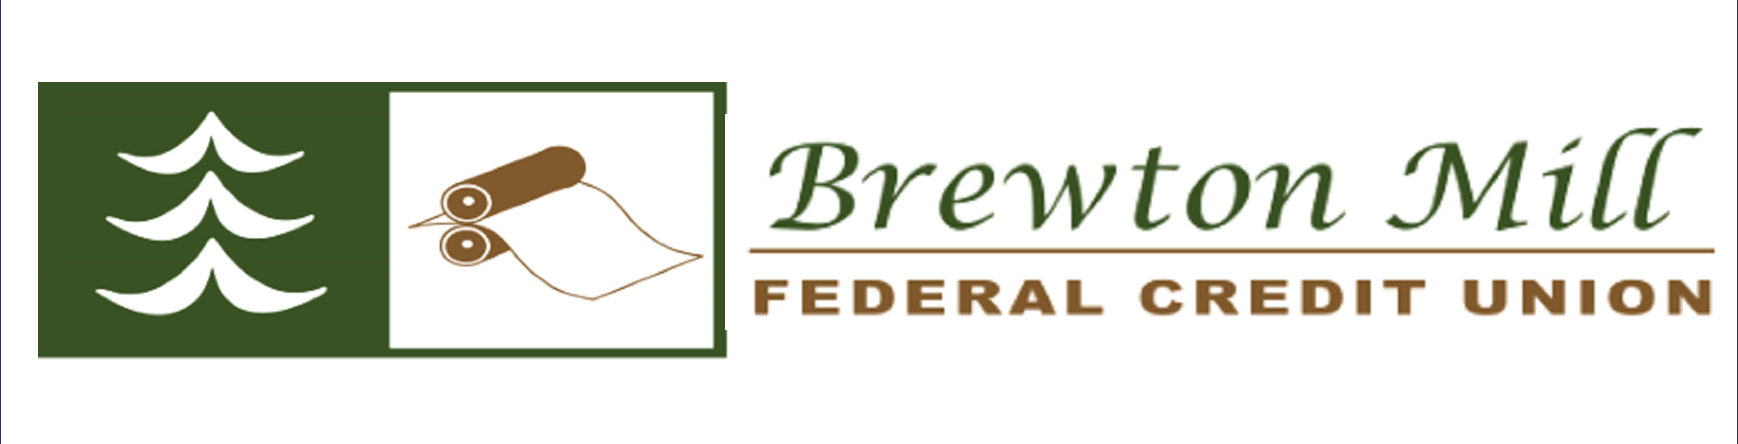 Brewton Mill Federal Credit Union Logo